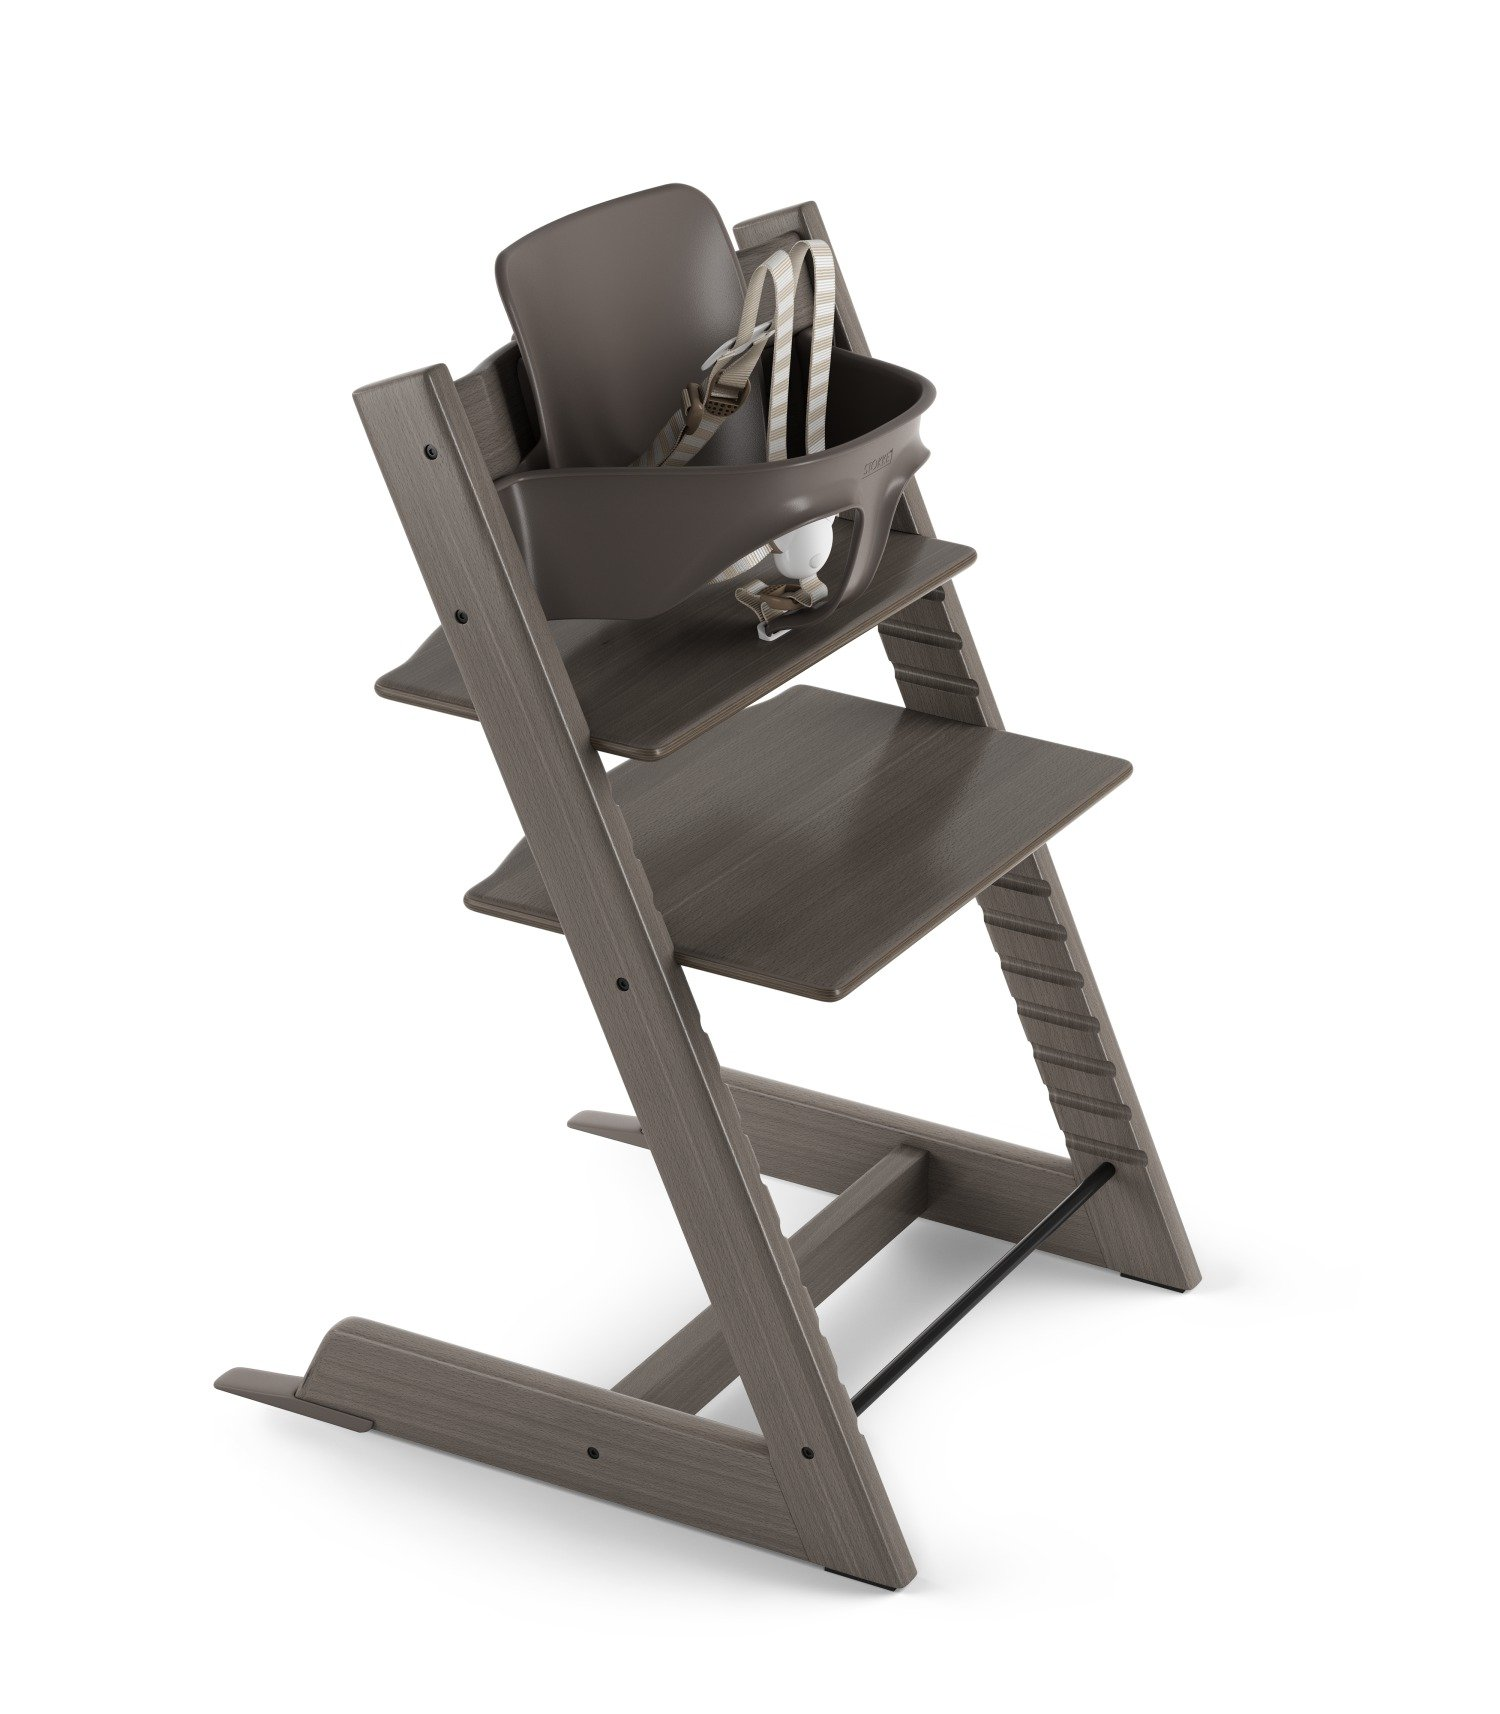 Stokke Tripp Trapp High Chair Package - Hazy Grey